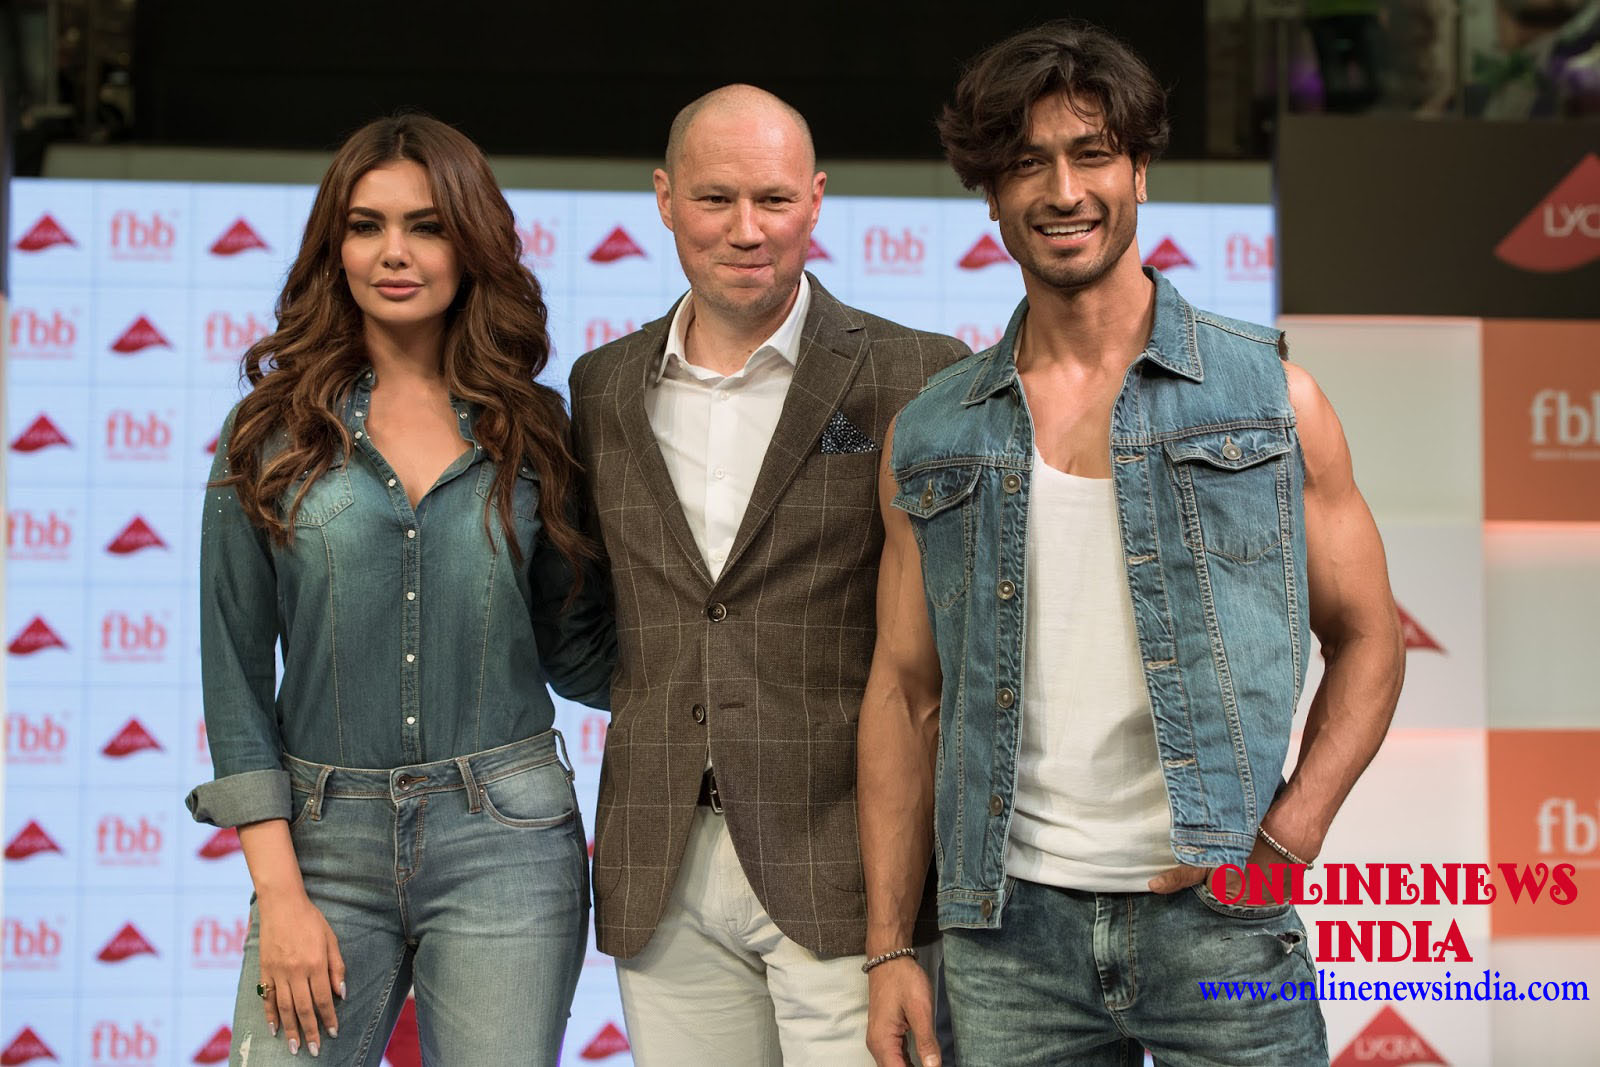 Esha Gupta and Vidyut Jamwal unveiling the fbb Lycra collection